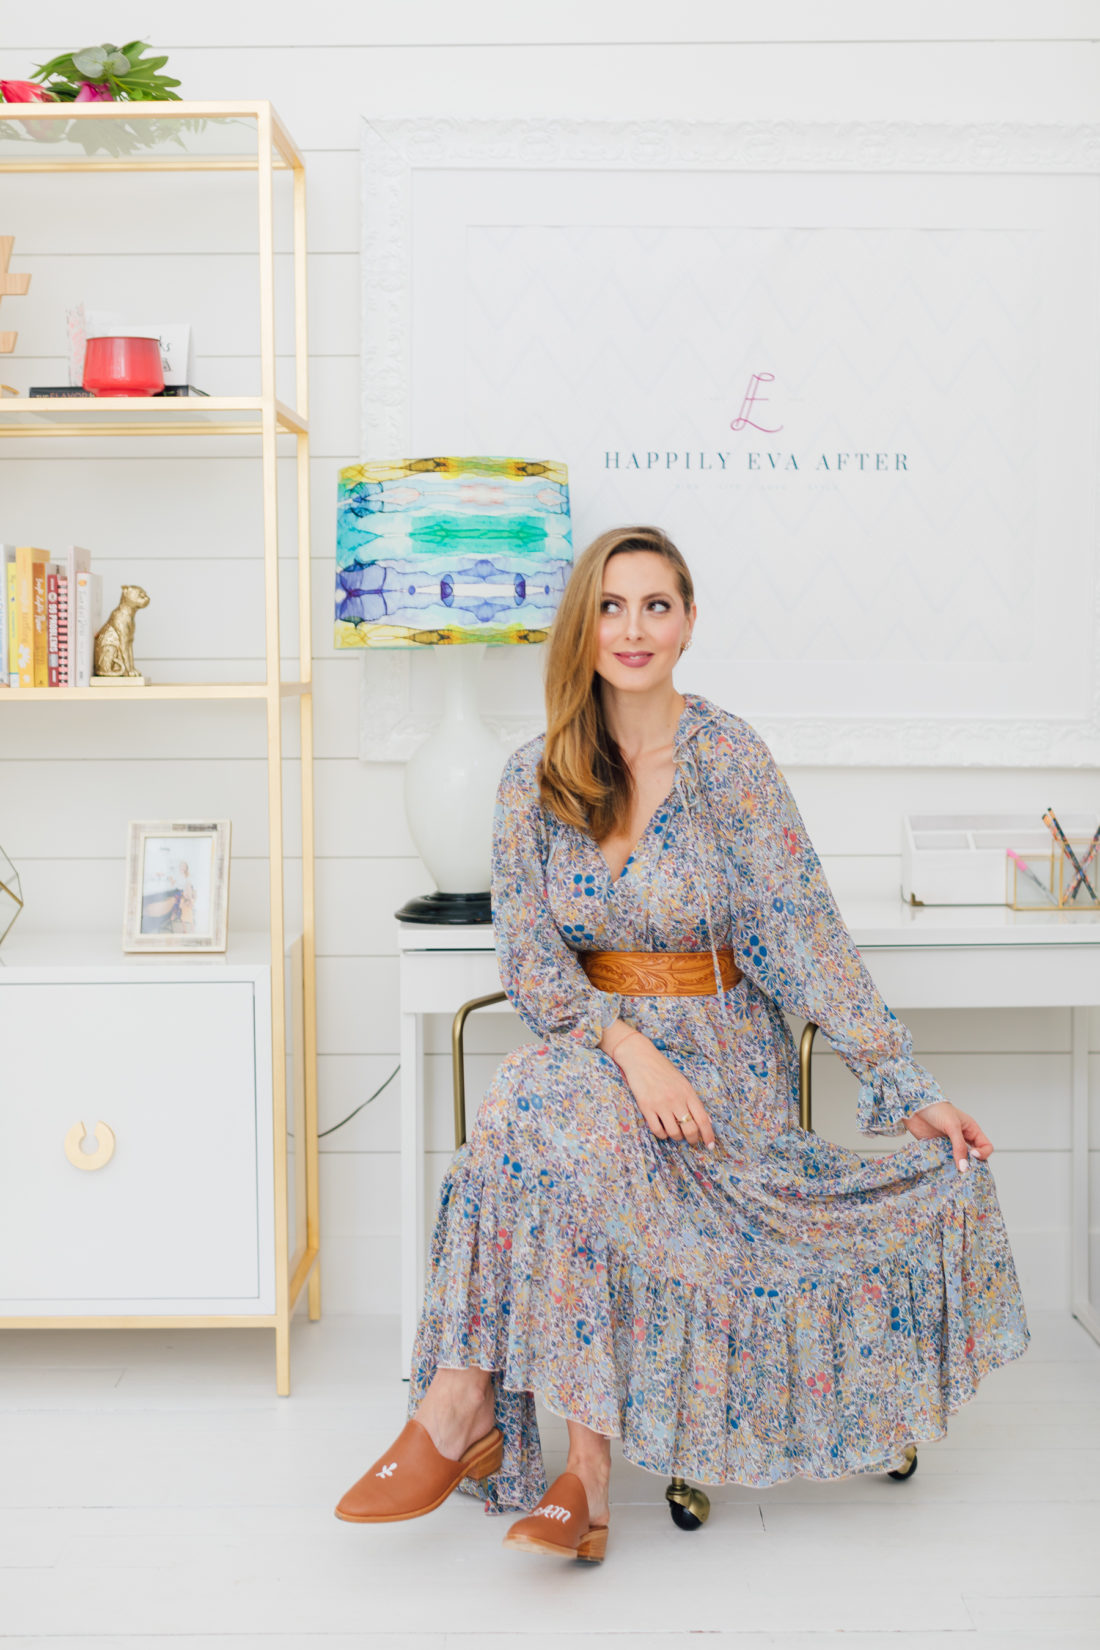 Eva Amurri Martino sits in the Happily Eva After Studio